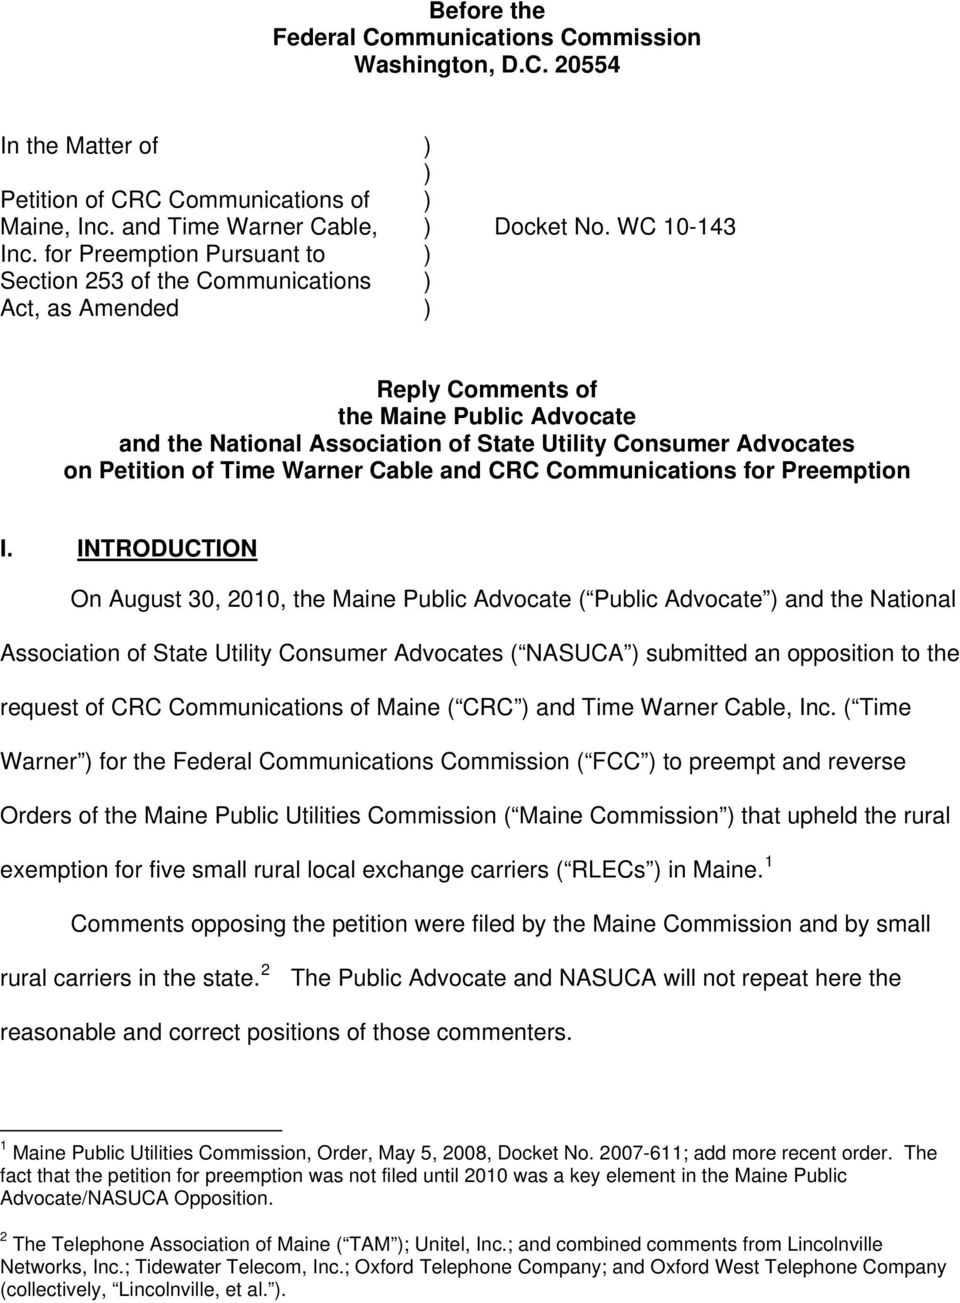 Petition of Time Warner Cable and CRC Communications for Preemption I.